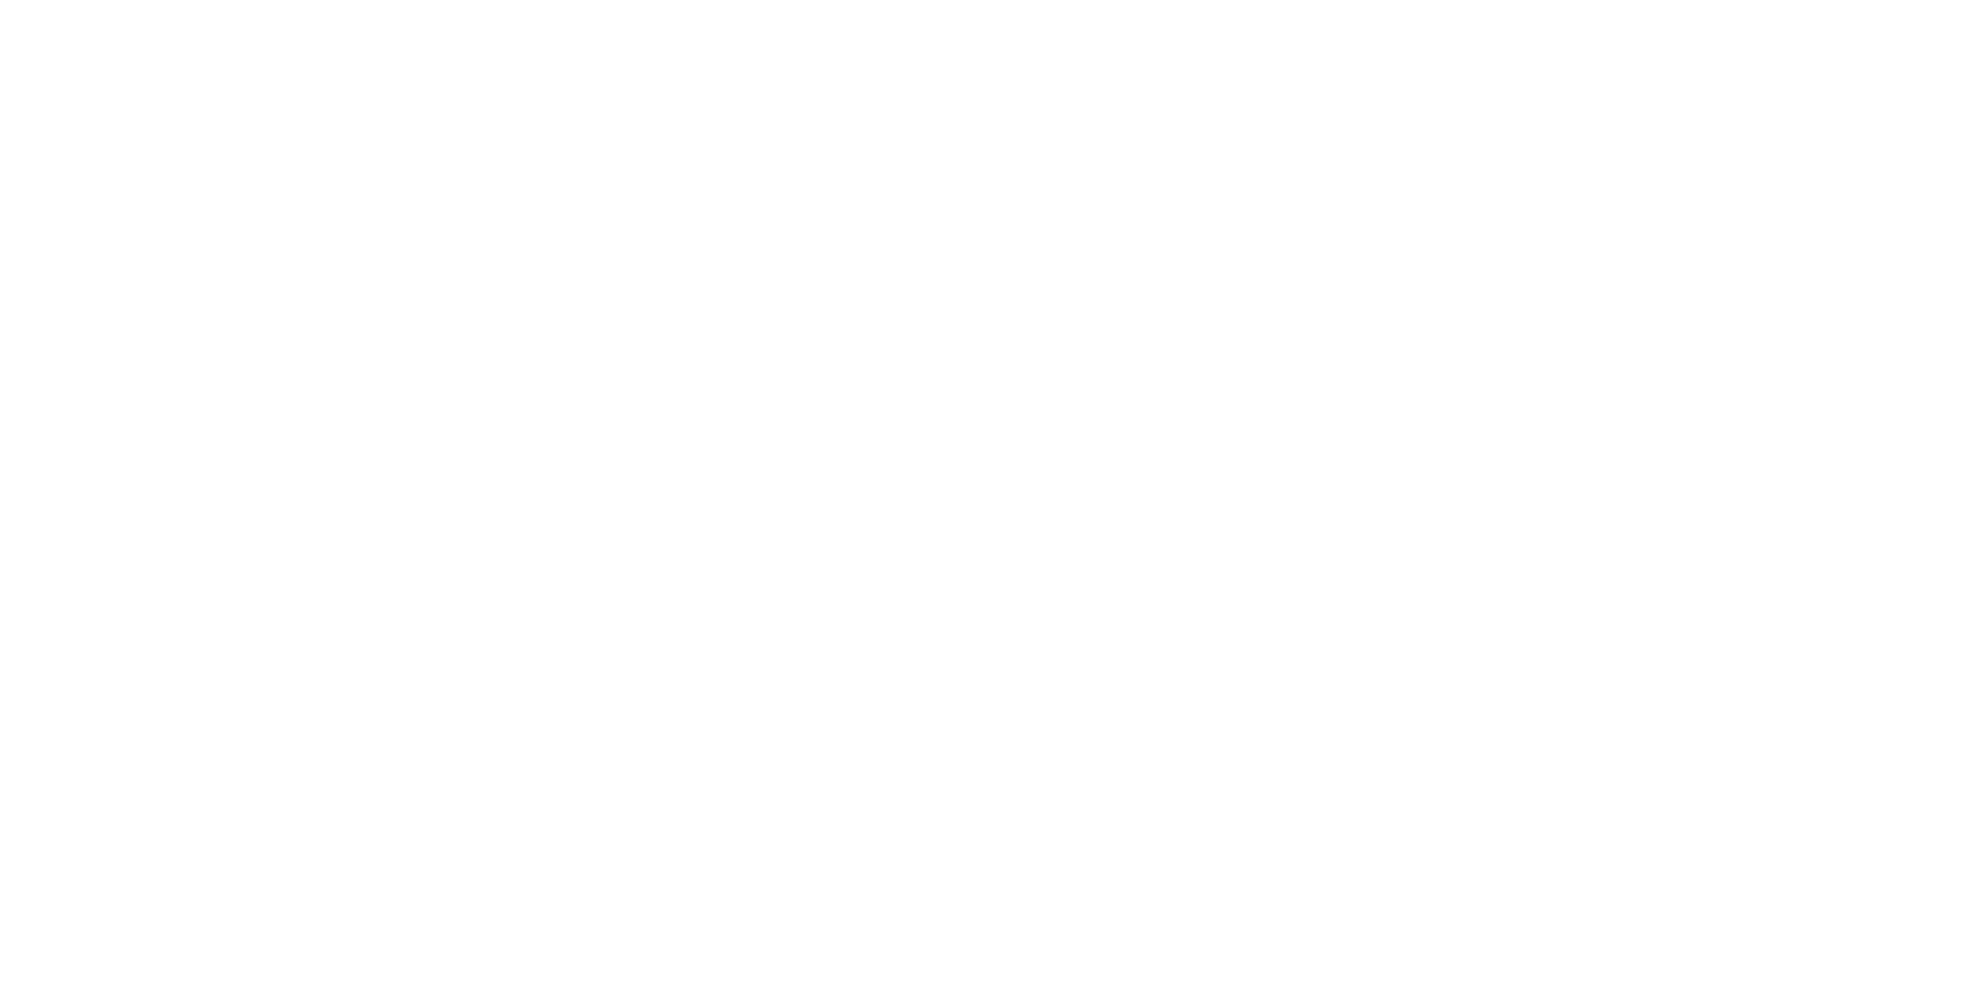 Drag Show Bar Lellebel